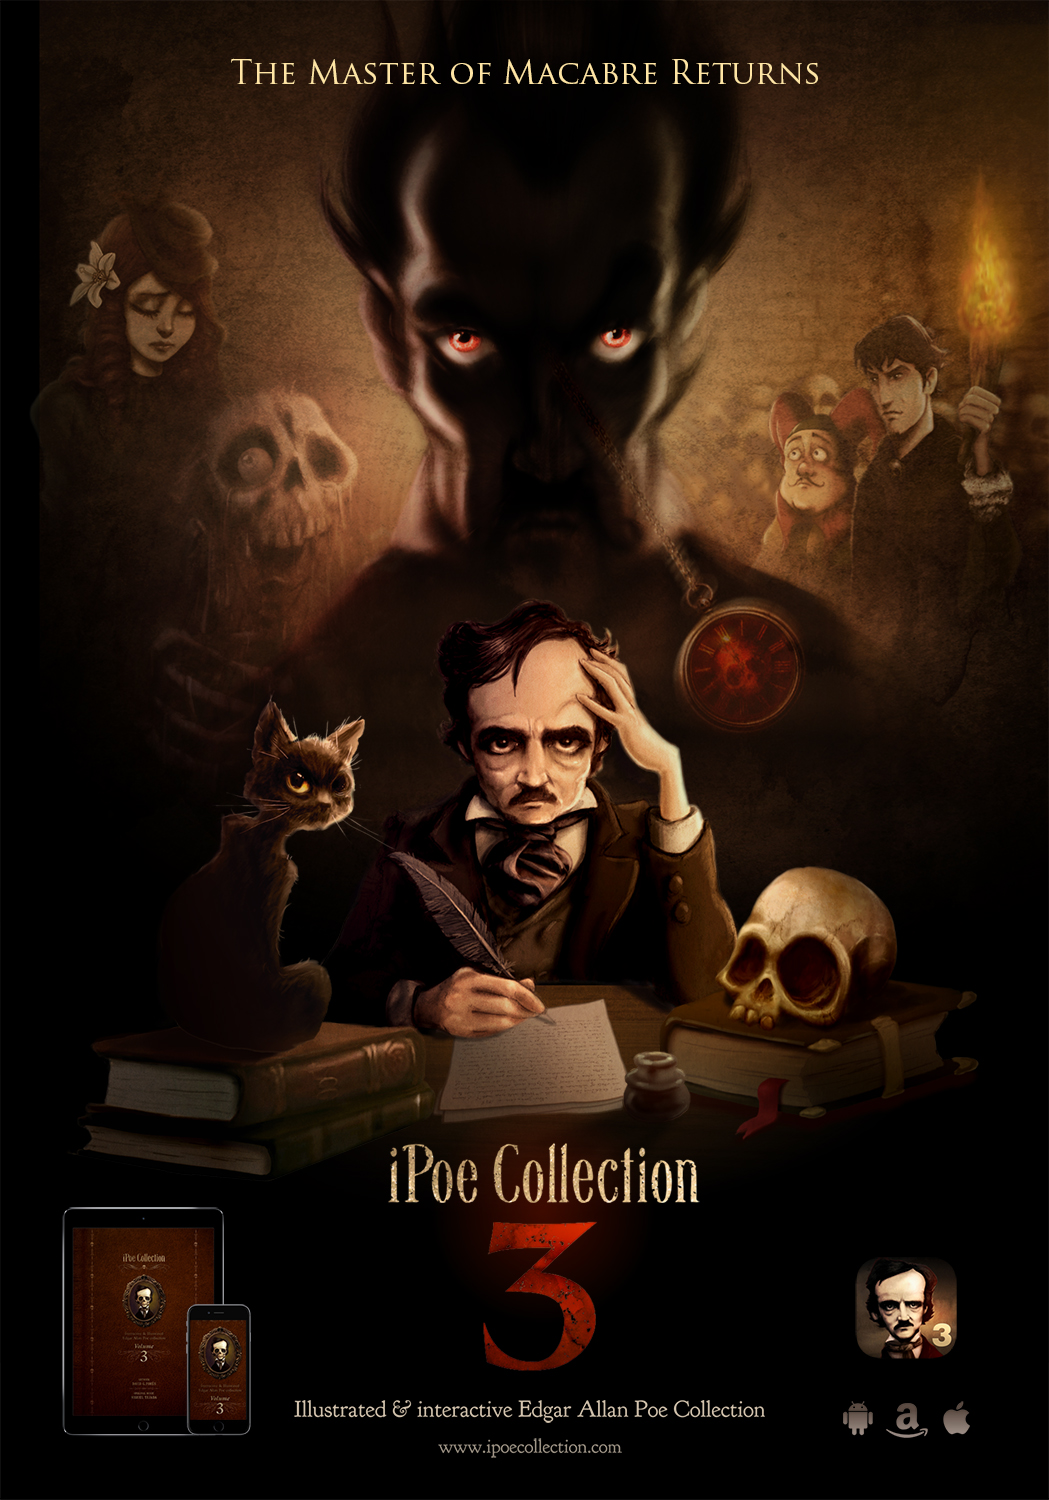 iPoe collection vol3: The Cask of Amontillado, Alone, The Facts in the Case of M. Valdemar, and El Dorado.